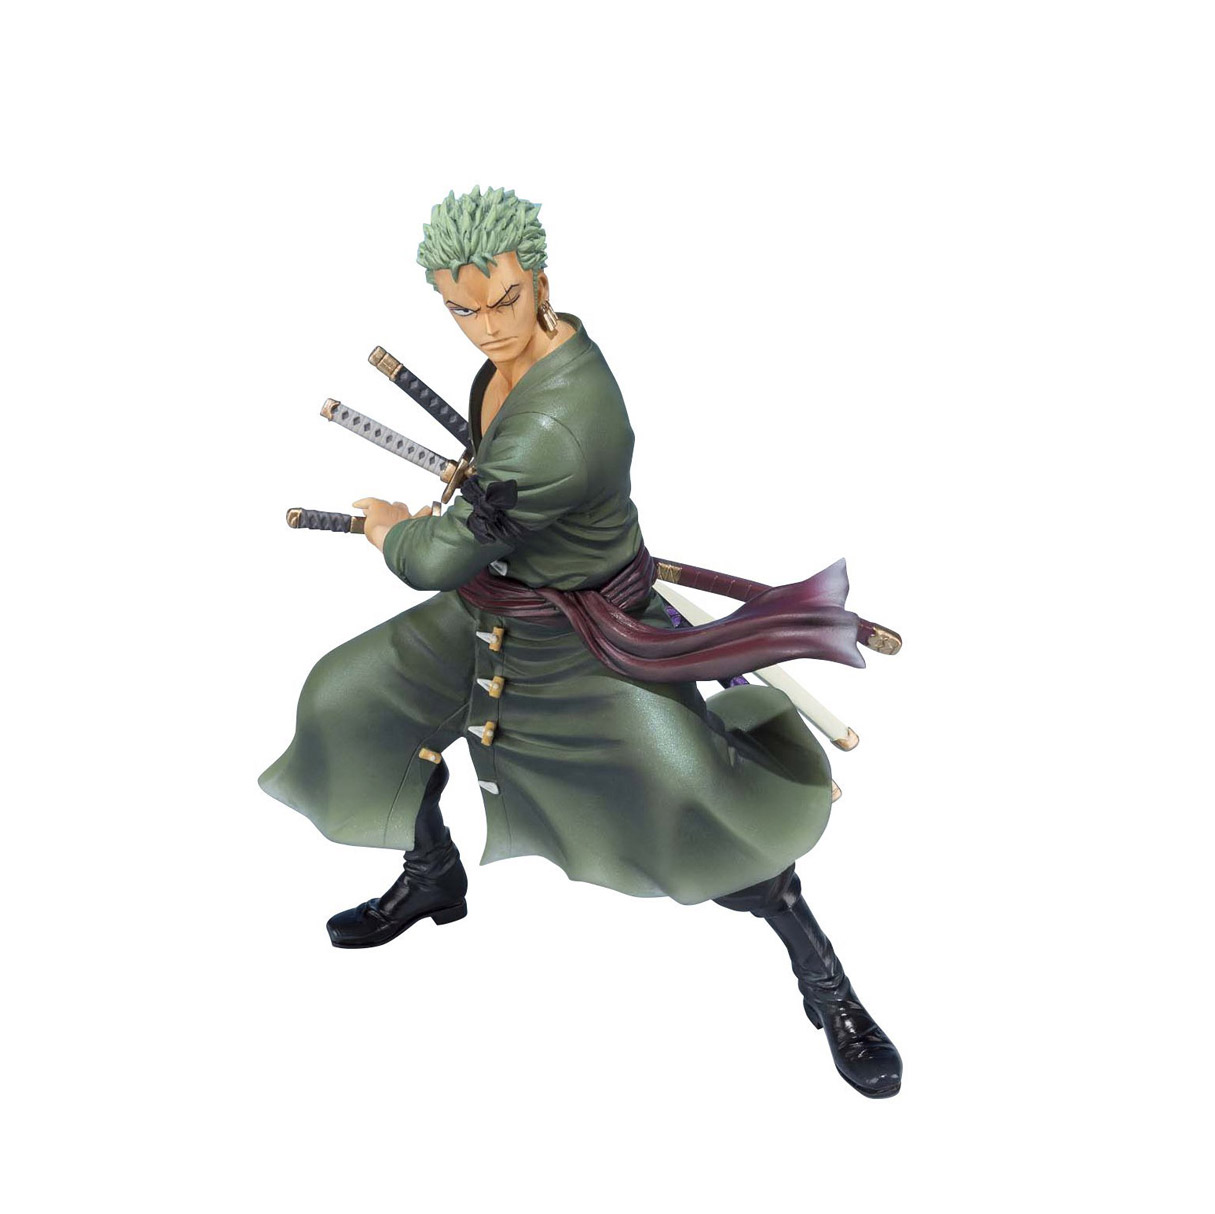 Chanycore Anime ONE PIECE SCultures BIG 5th anniversary NEW WORLD 14CM PVC Action Figures Roronoa Zoro DXF collect model toys 2017 electronic beauty machine massage facial skin care pore cleaner nose cleansing remover blackhead acne suction tools h7jp